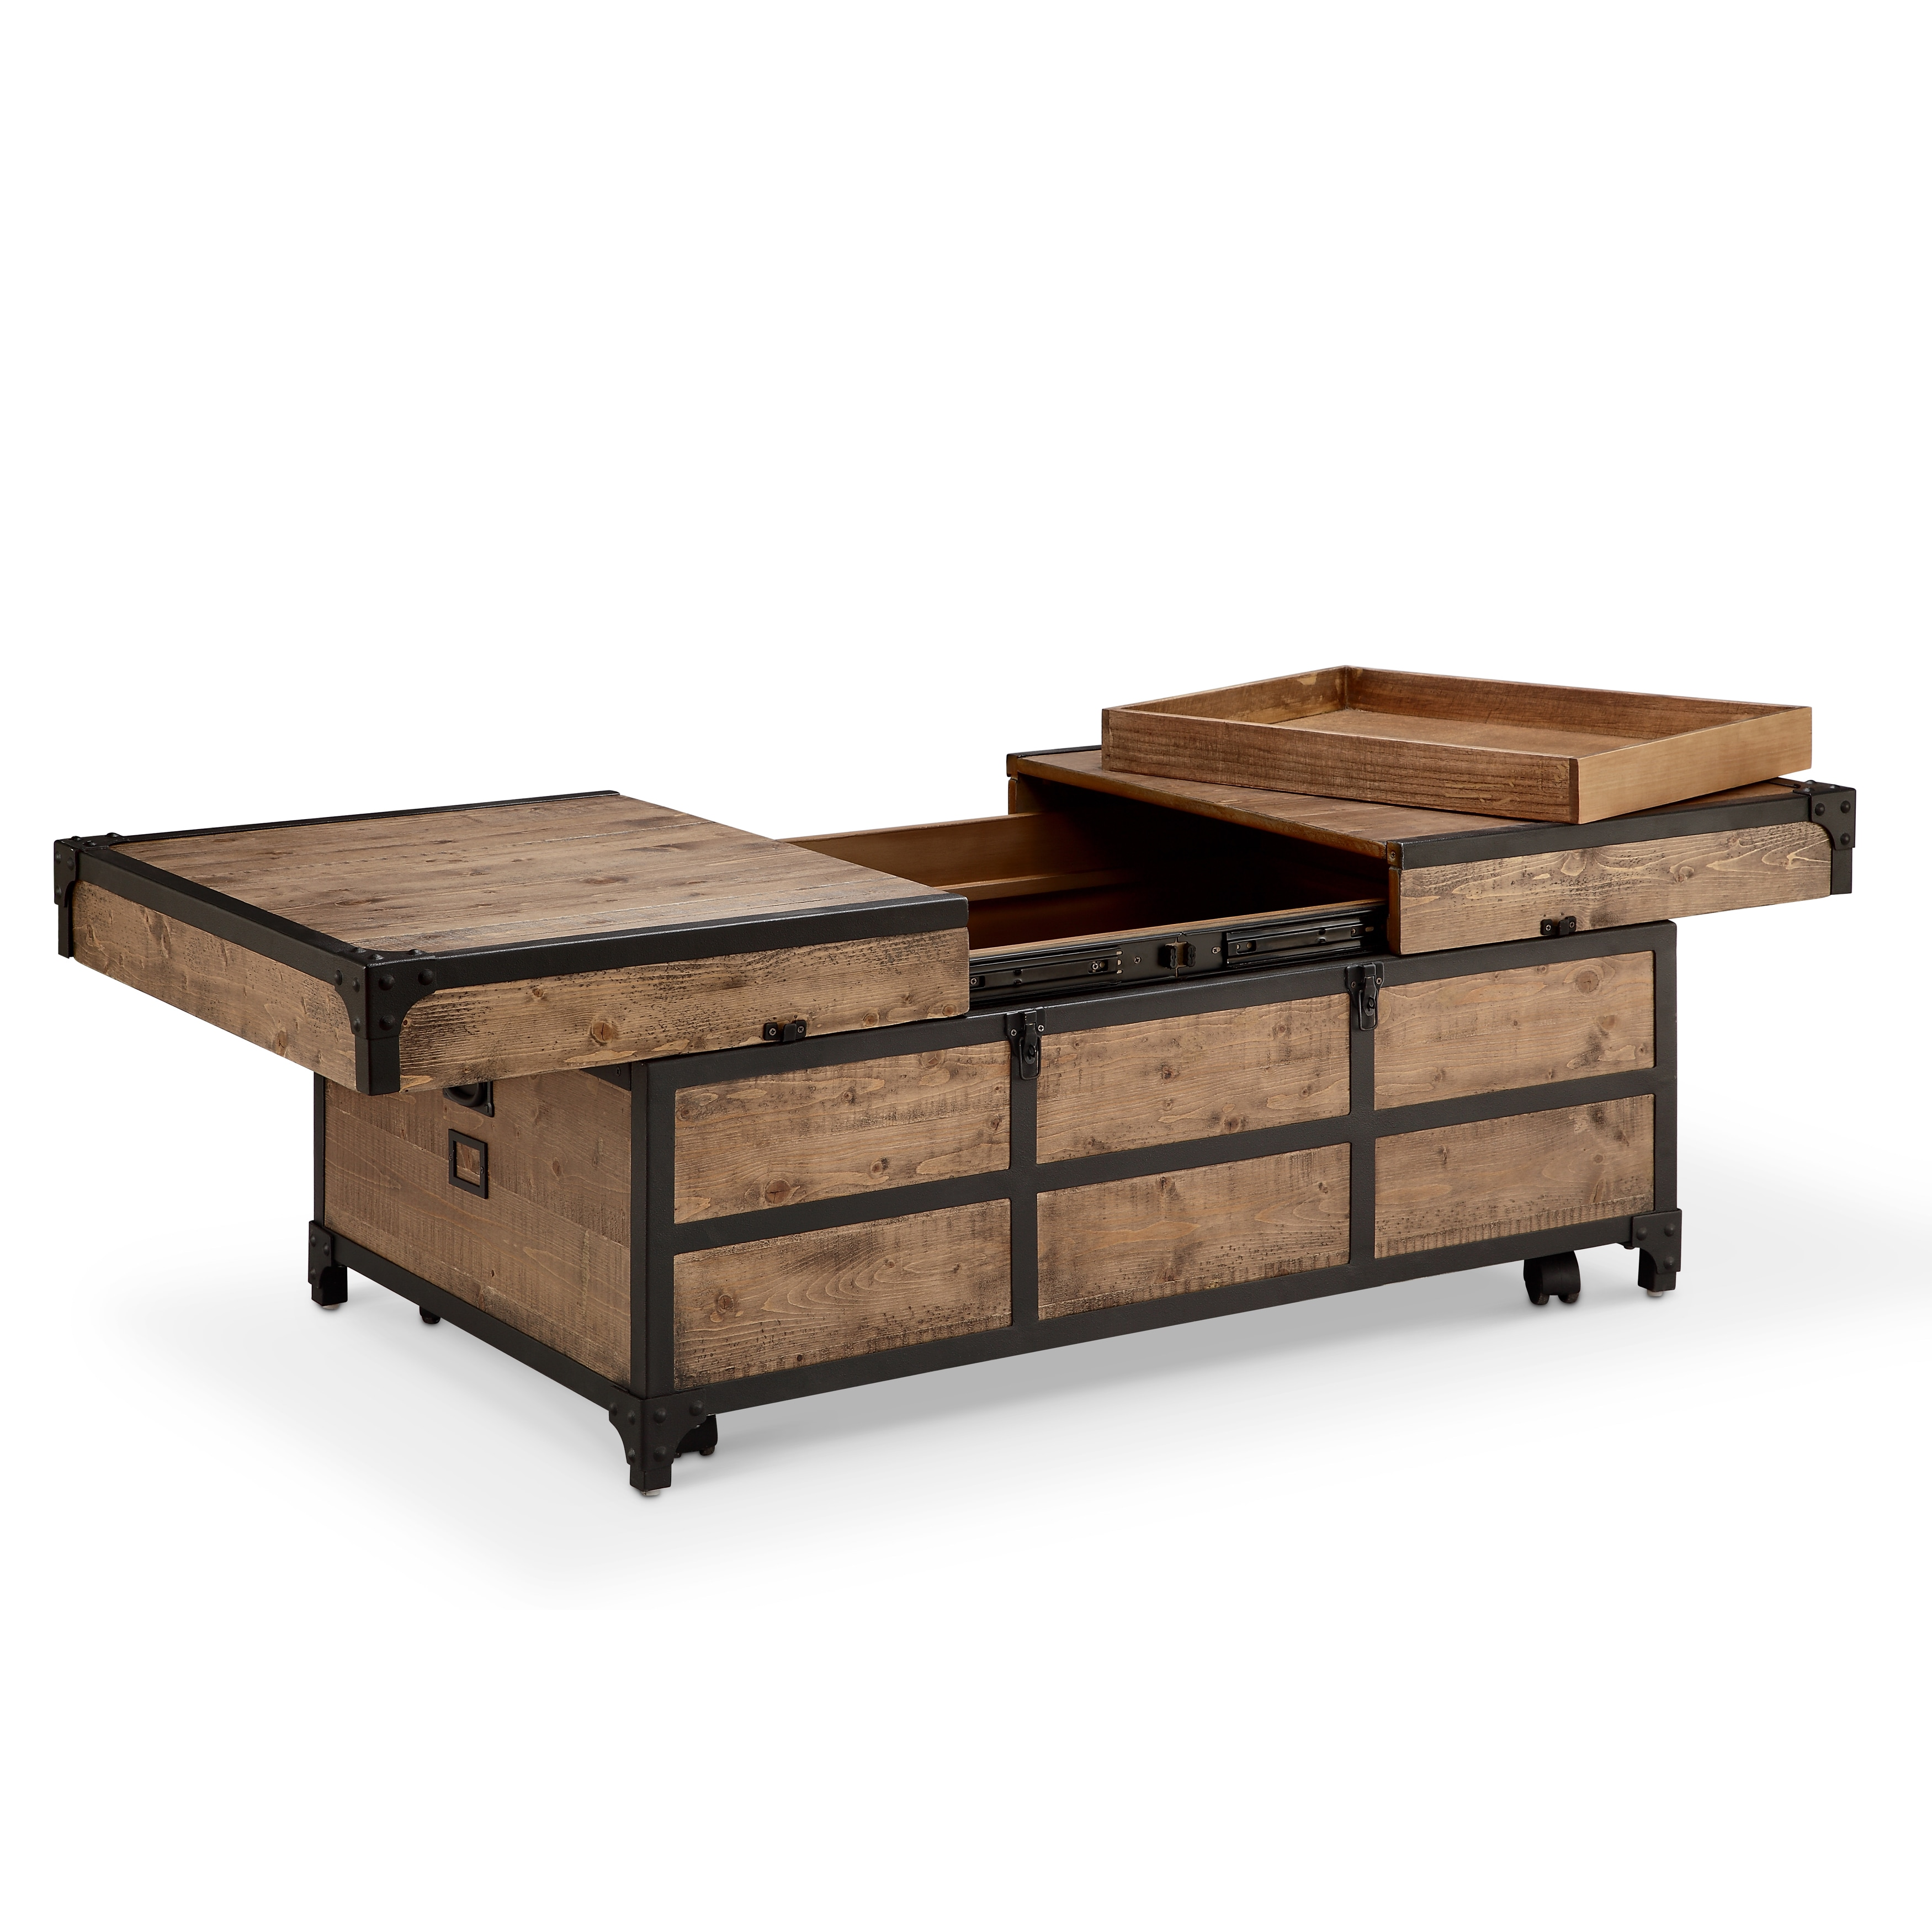 Shop Maguire Rustic Weathered Barley Expandable Storage Coffee